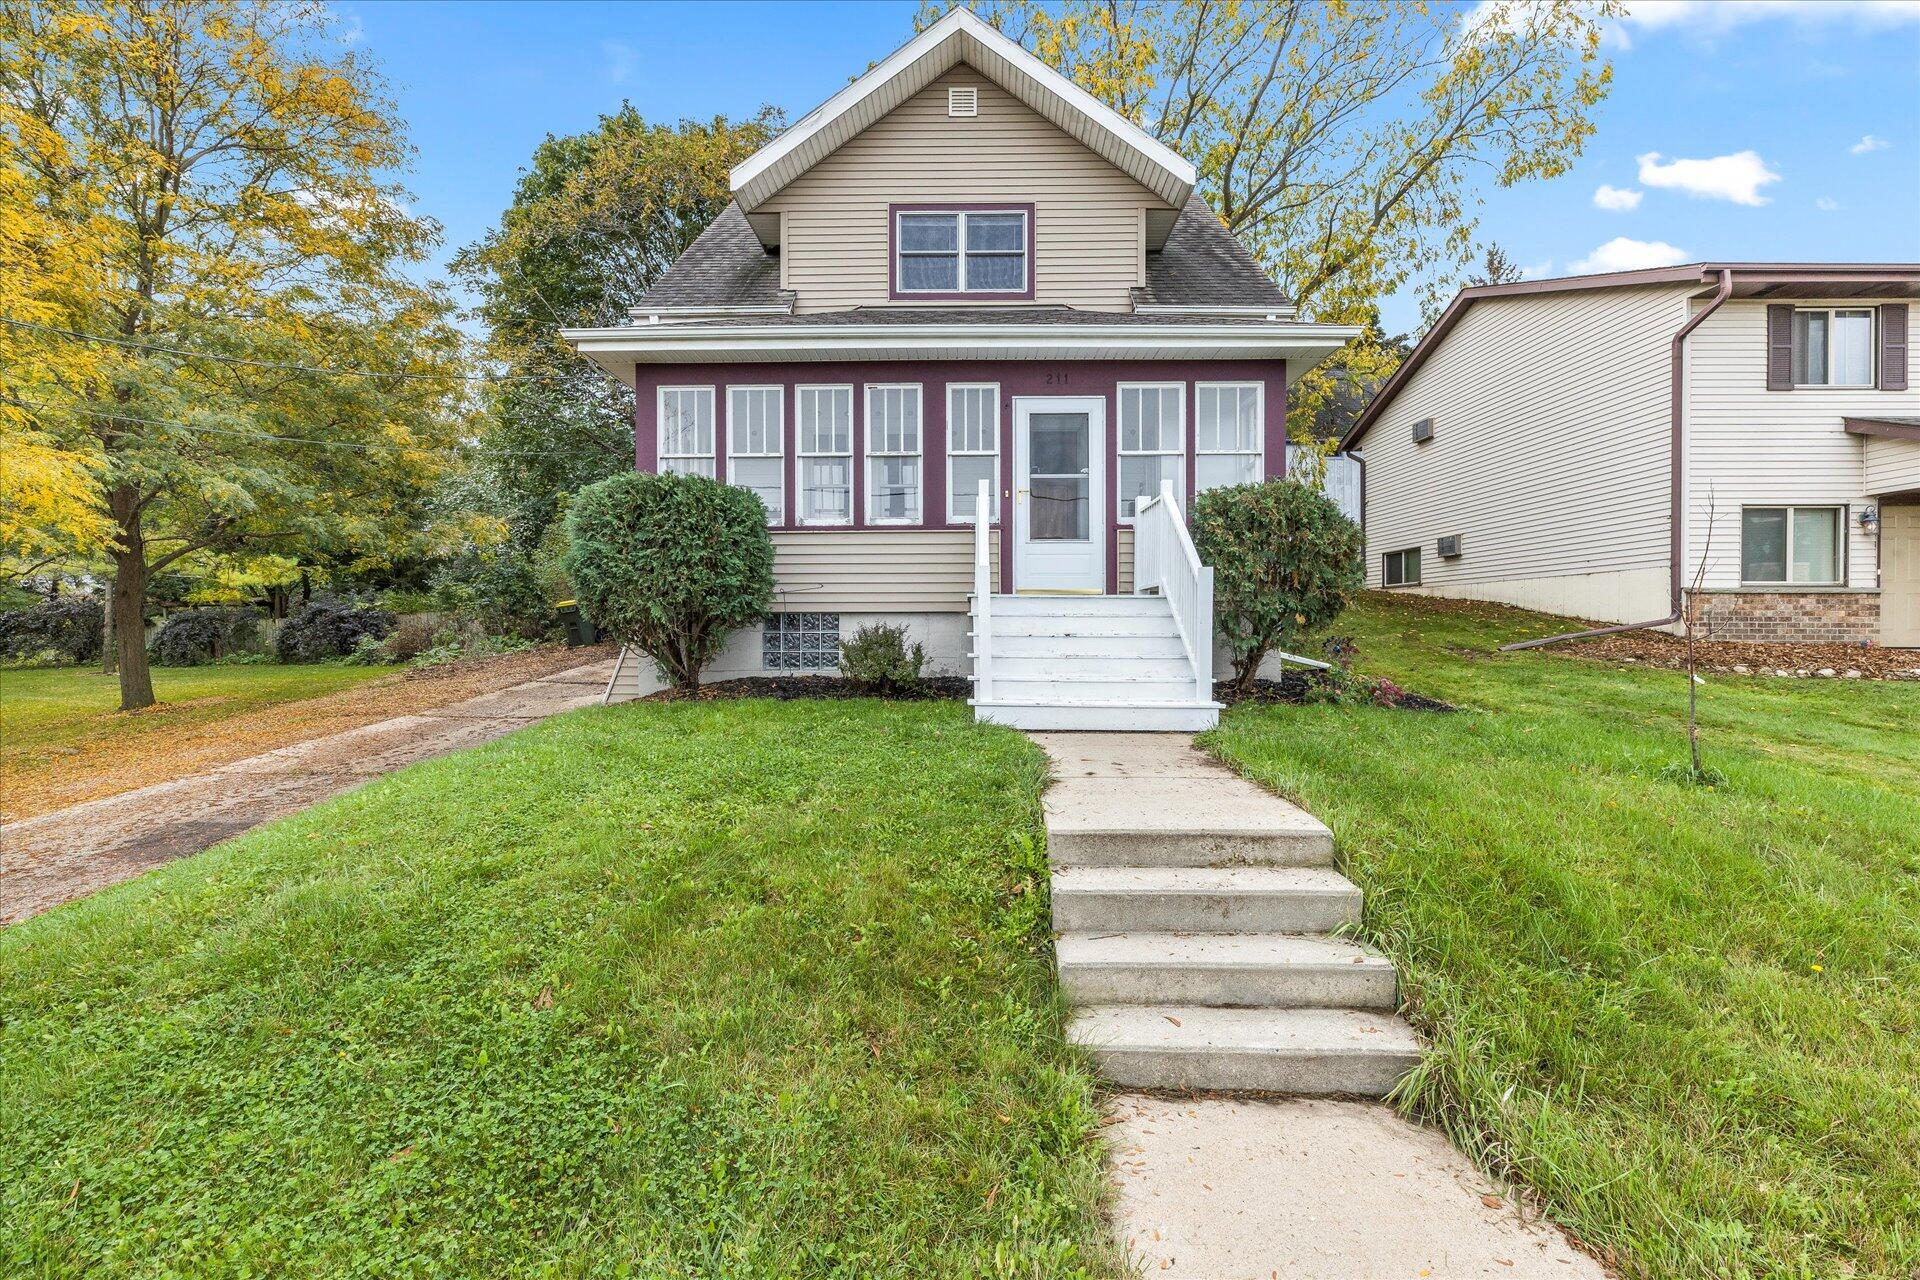 211 Park Ave, Hartford, Wisconsin 53027, 2 Bedrooms Bedrooms, ,1 BathroomBathrooms,Single-Family,For Sale,Park Ave,1768272